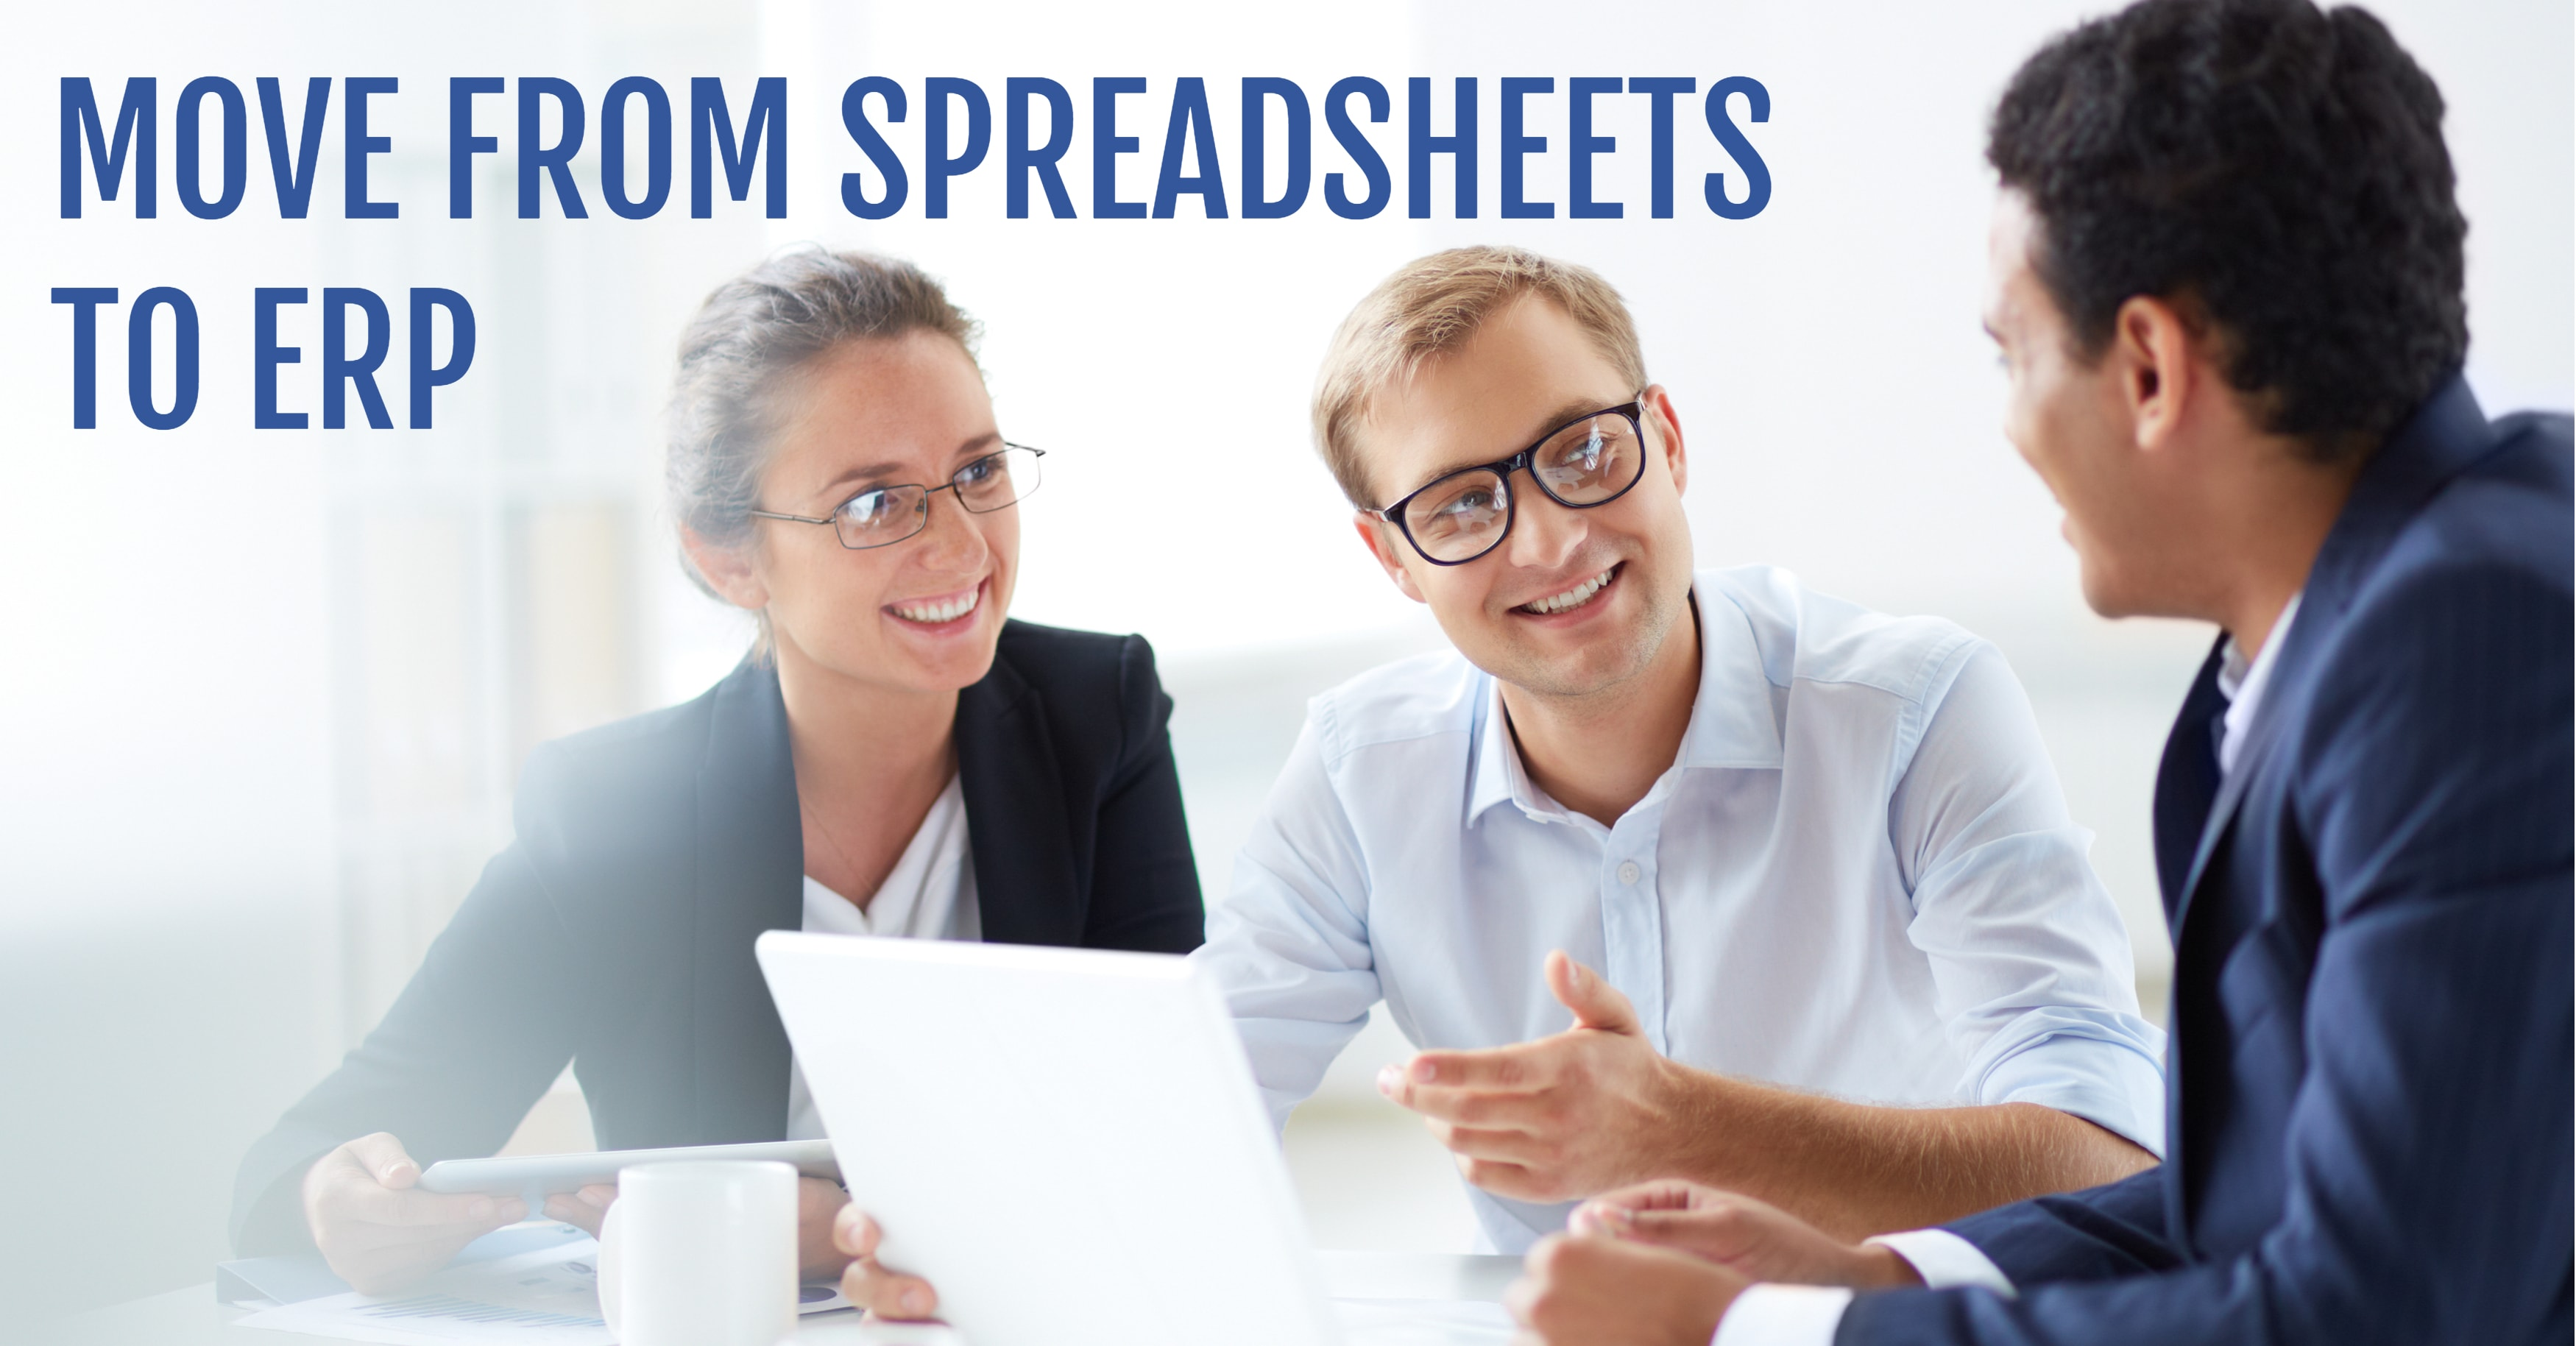 How to Move from Spreadsheets to ERP